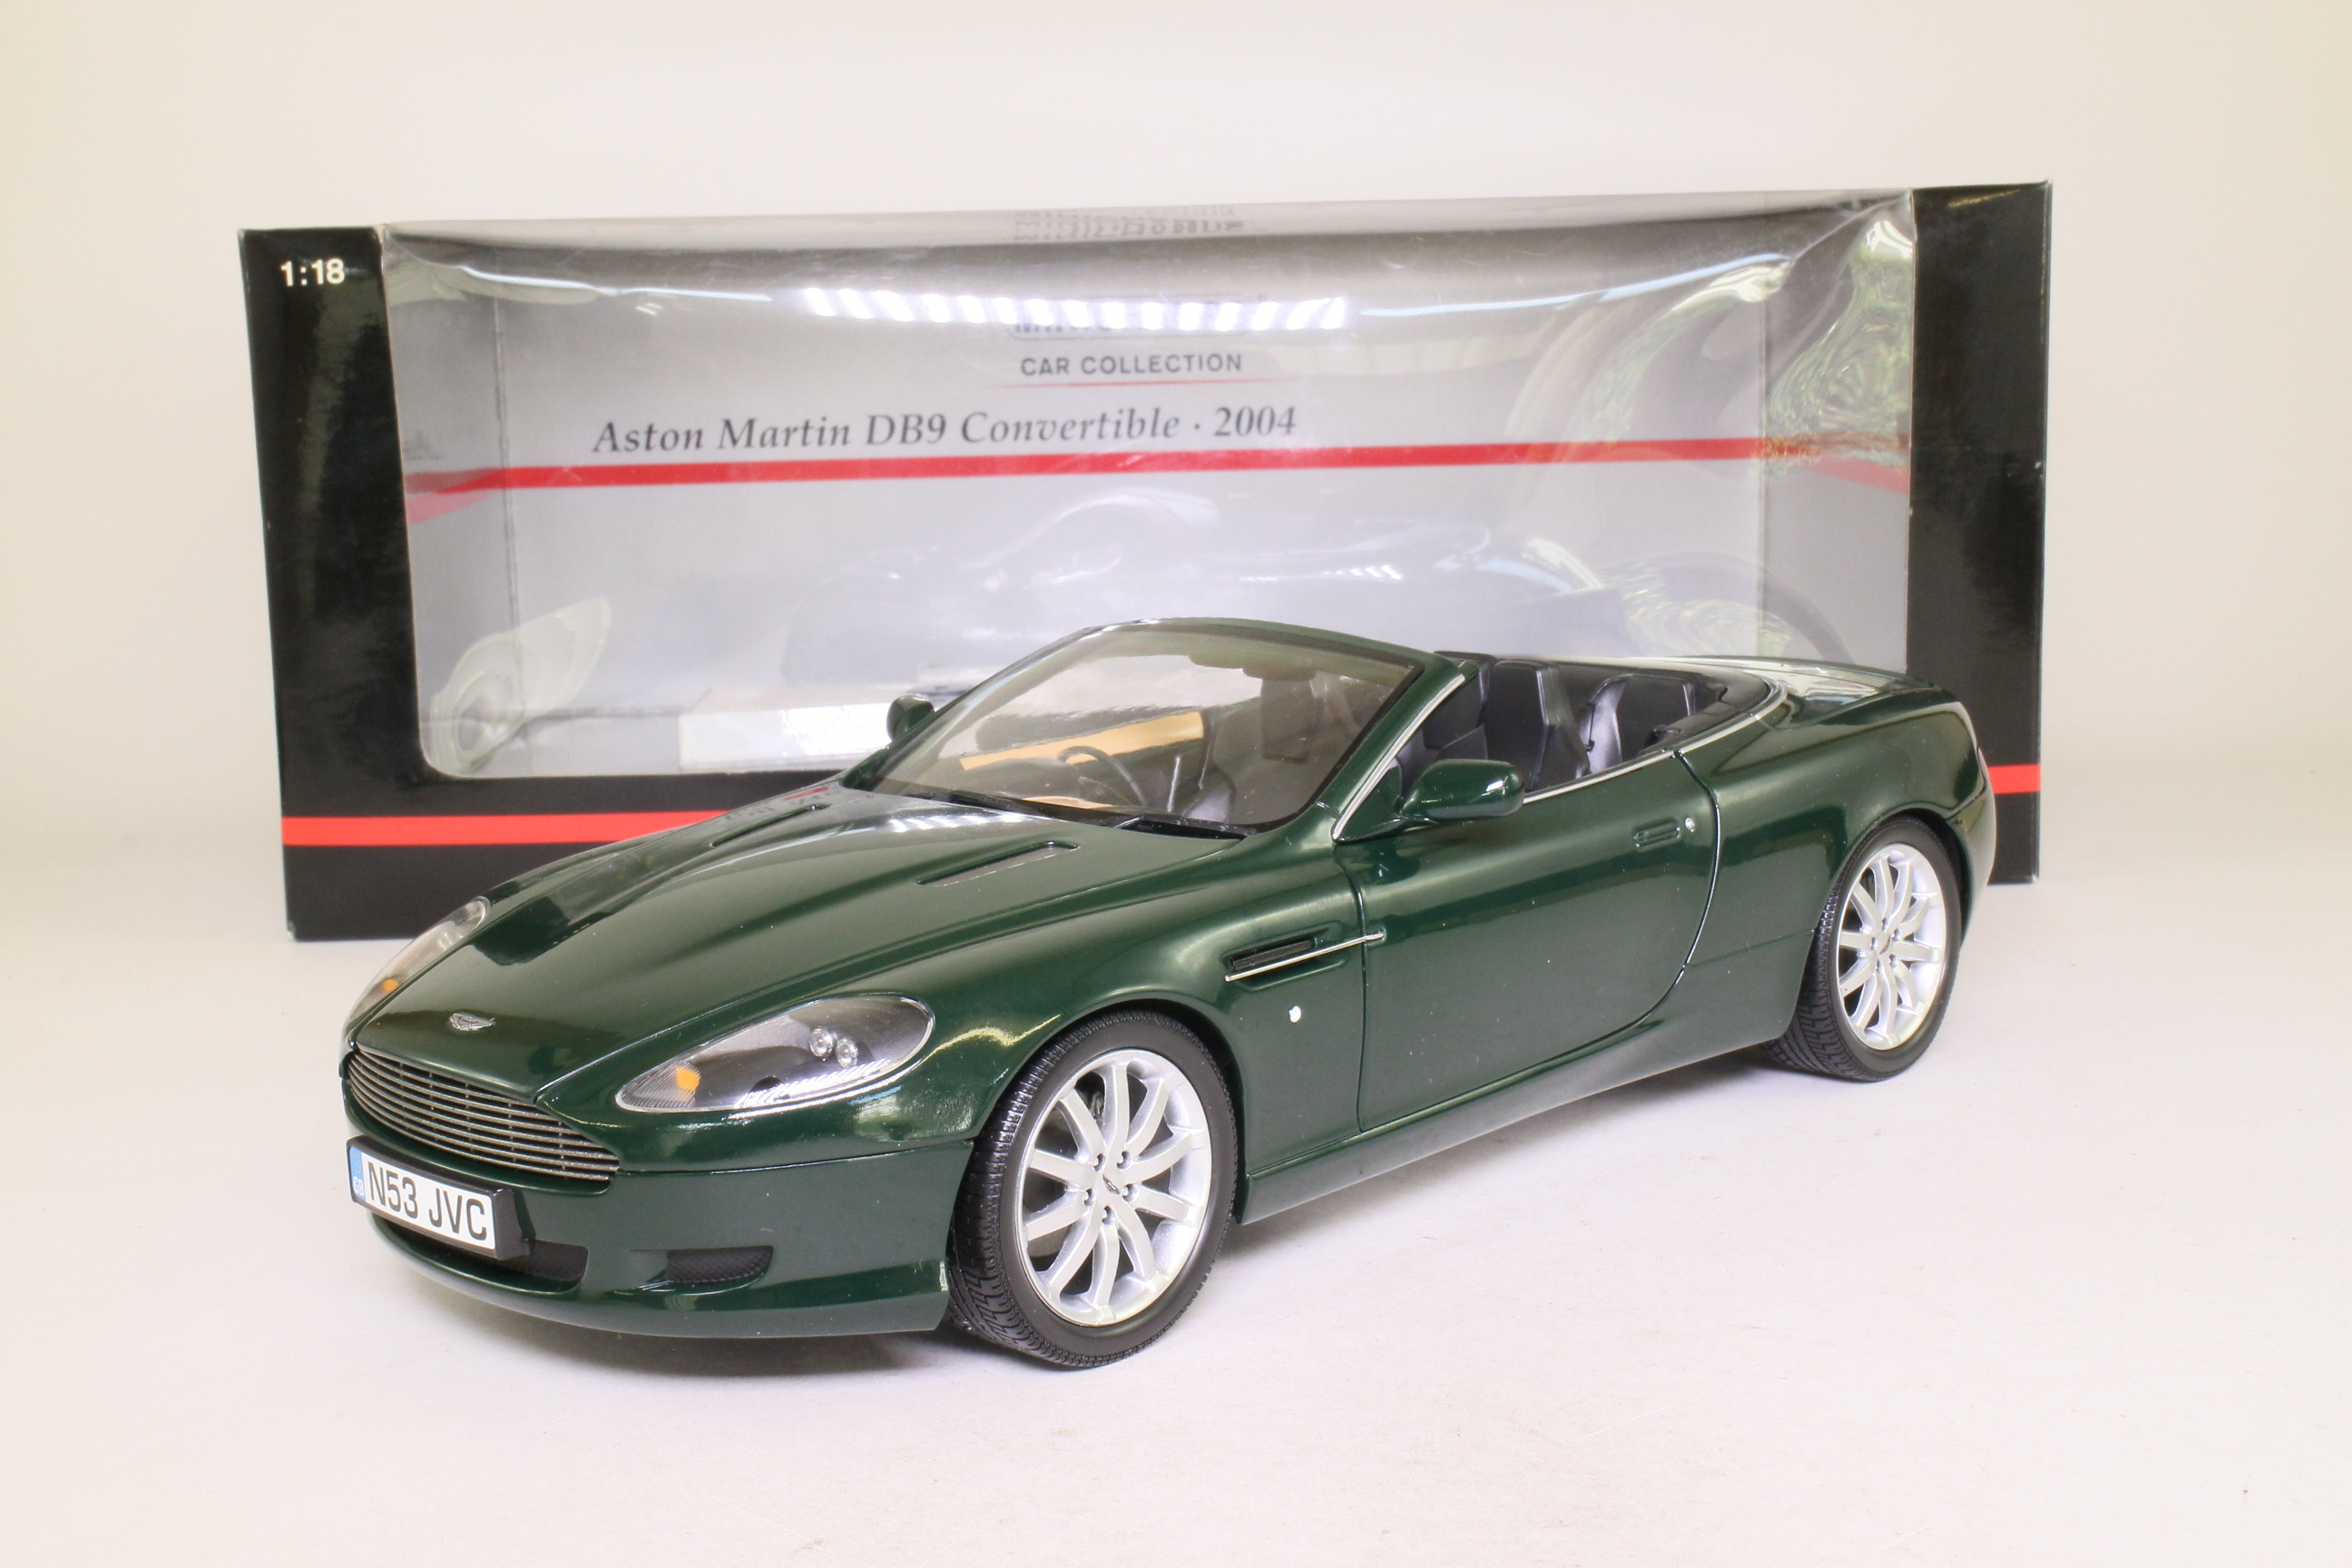 Minichamps 150 137330; 2004 Aston Martin DB9 Convertible; British Racing Green Metallic